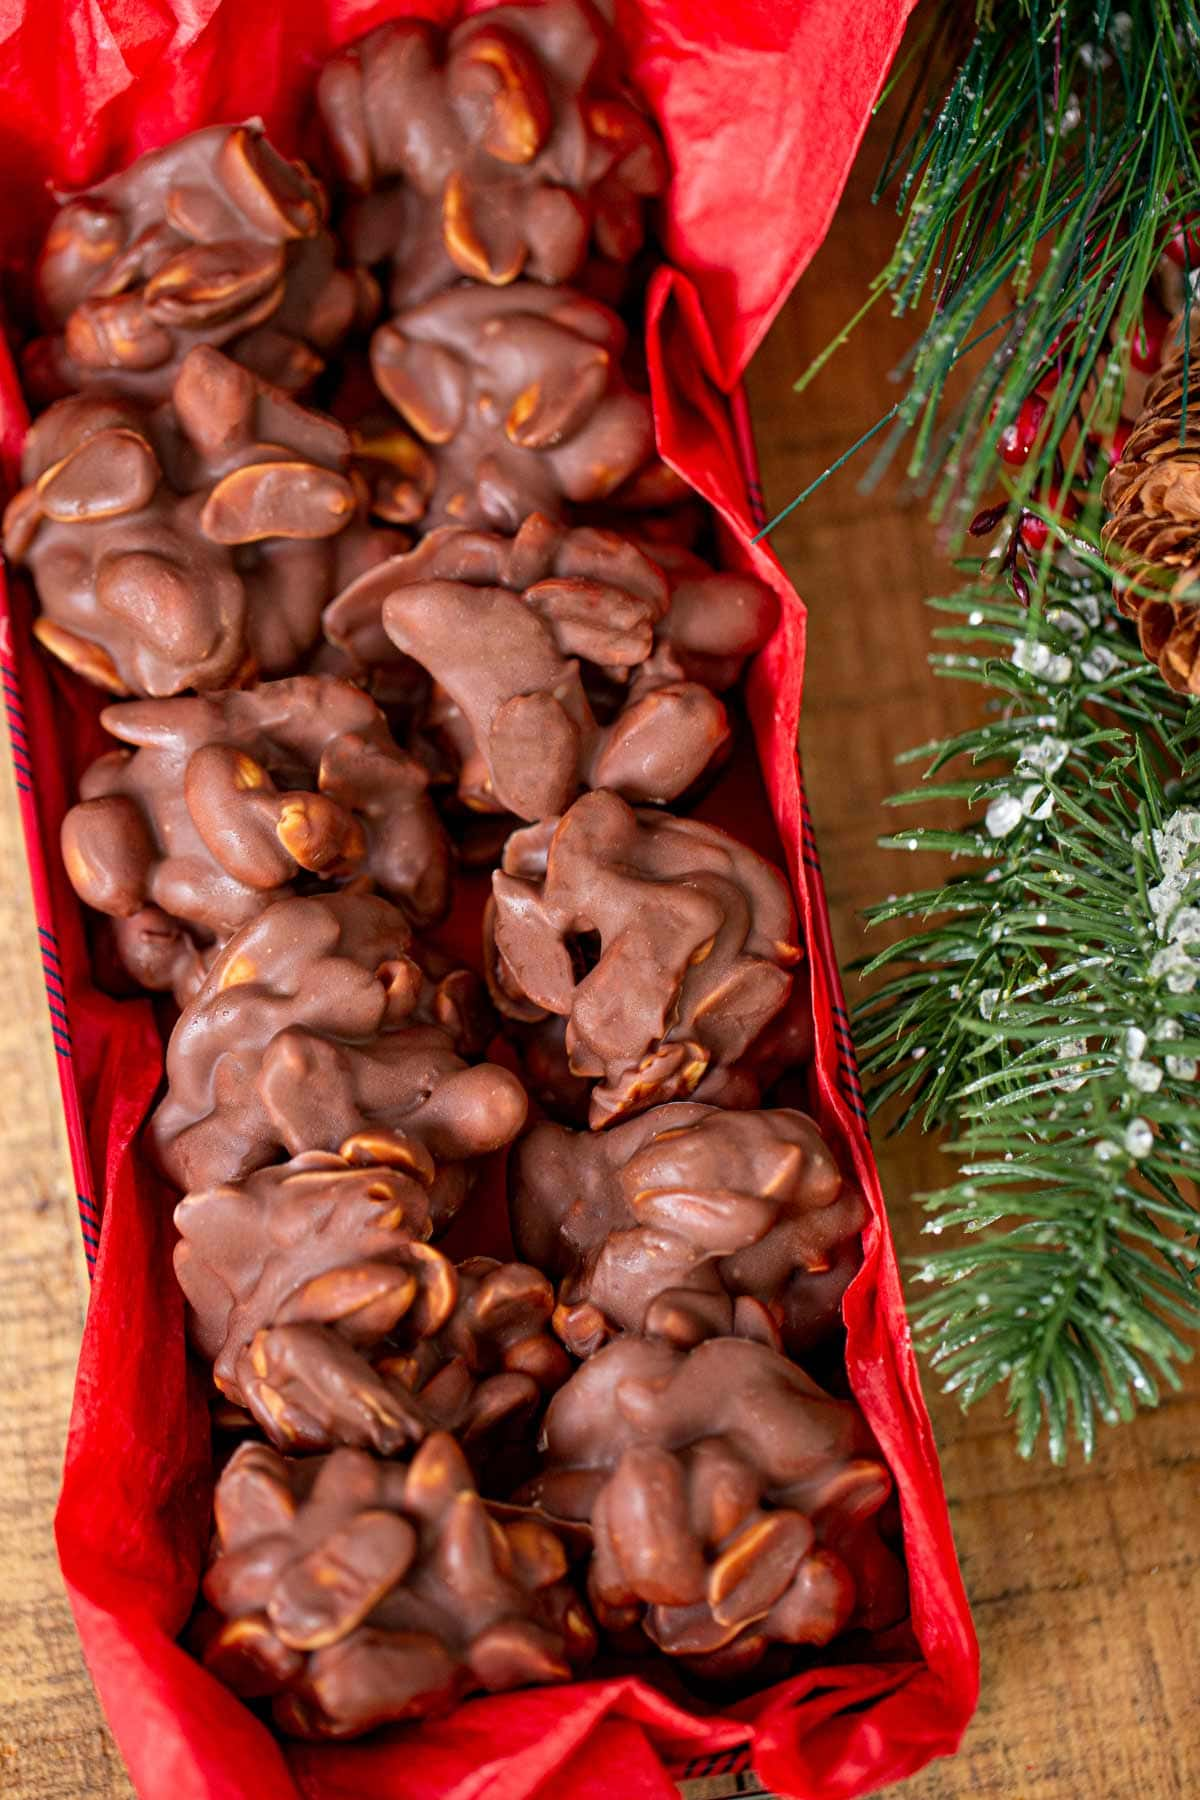 Chocolate Peanut Clusters in decorative box